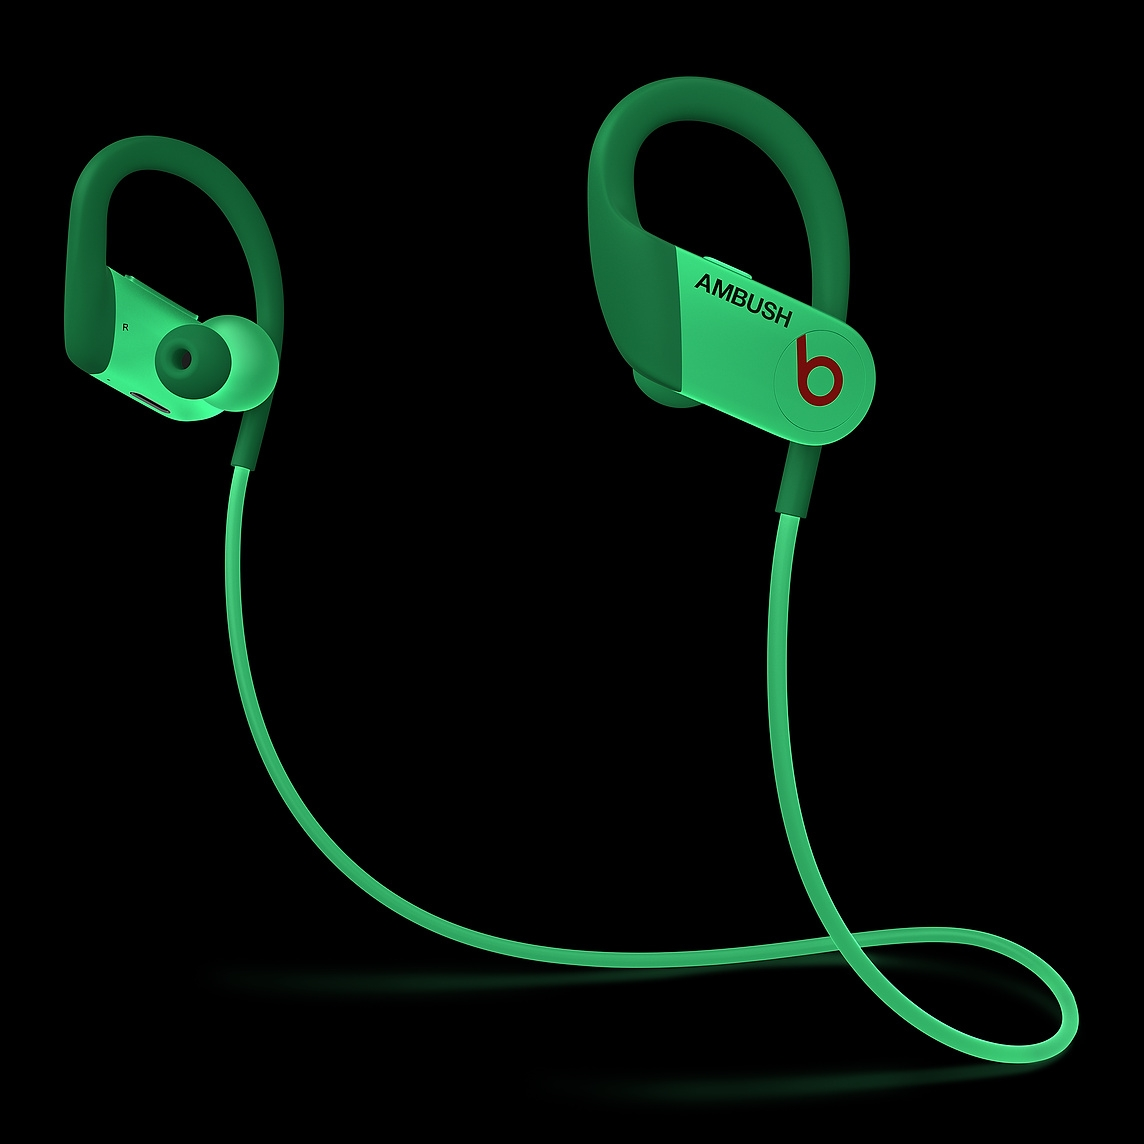 新品发售 : Beats Powerbeats 4 入耳式耳机 AMBUSH特别版